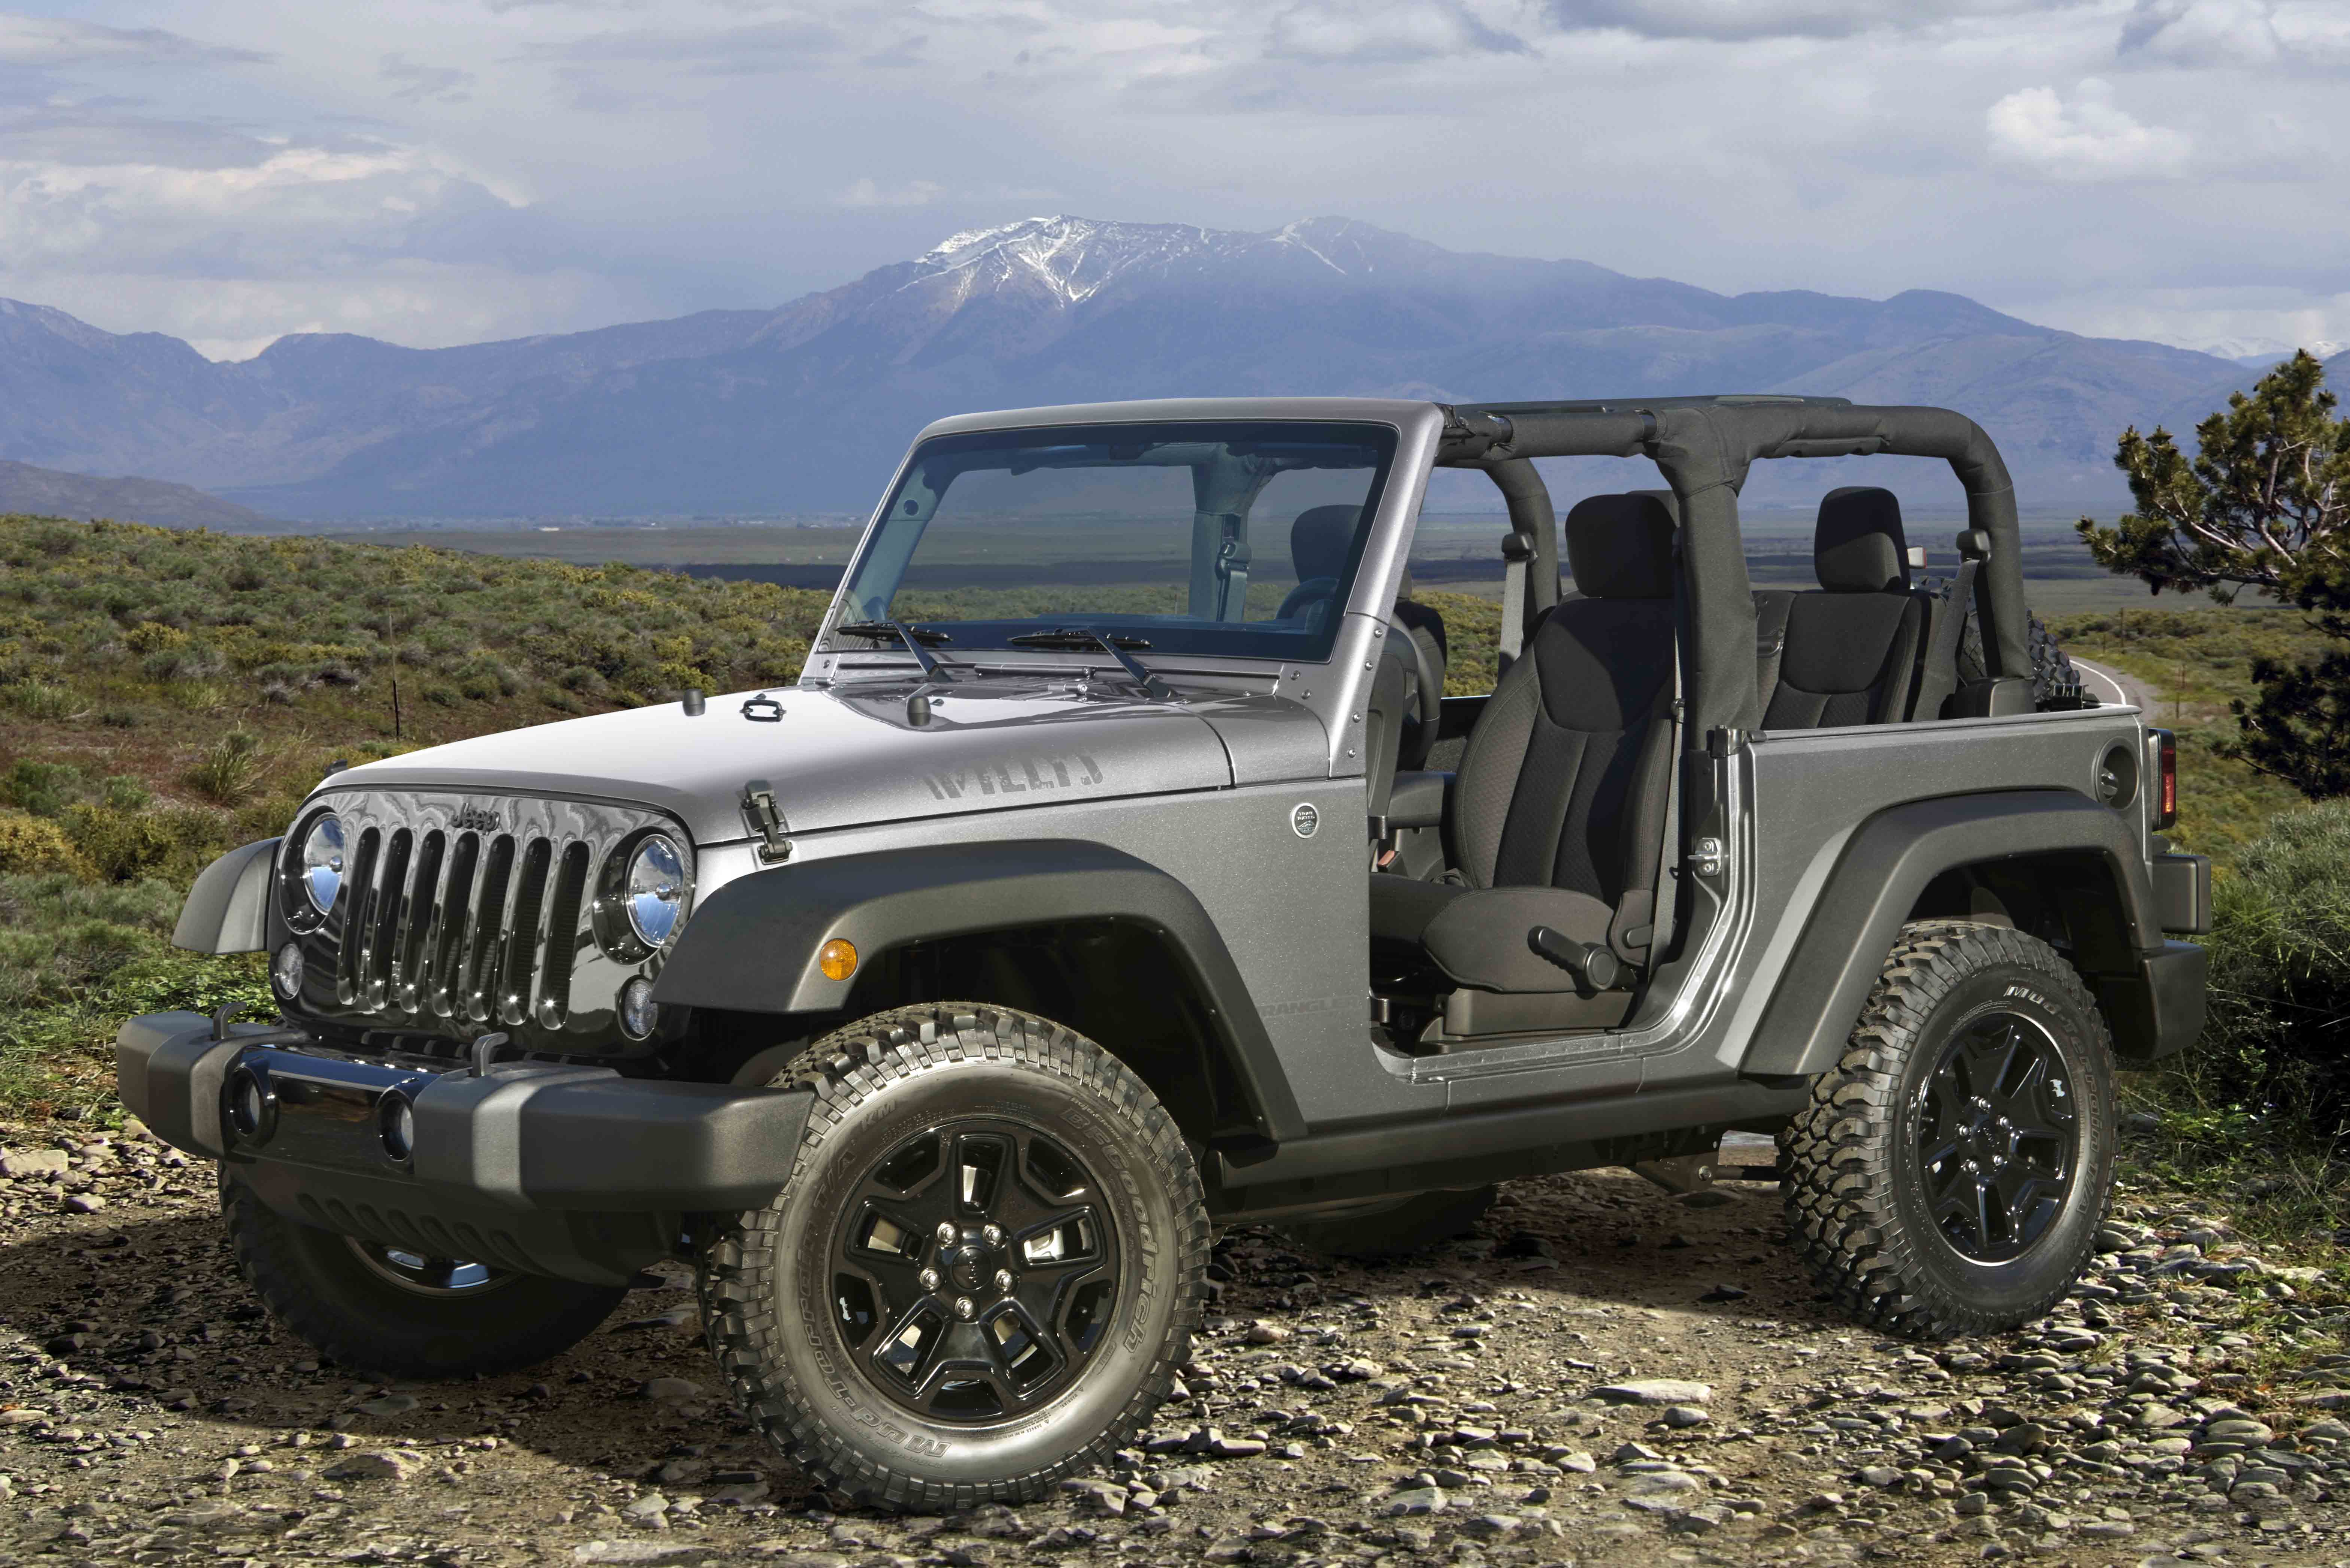 Best Off-Road Vehicles | Anchorage Chrysler Dodge Jeep Ram